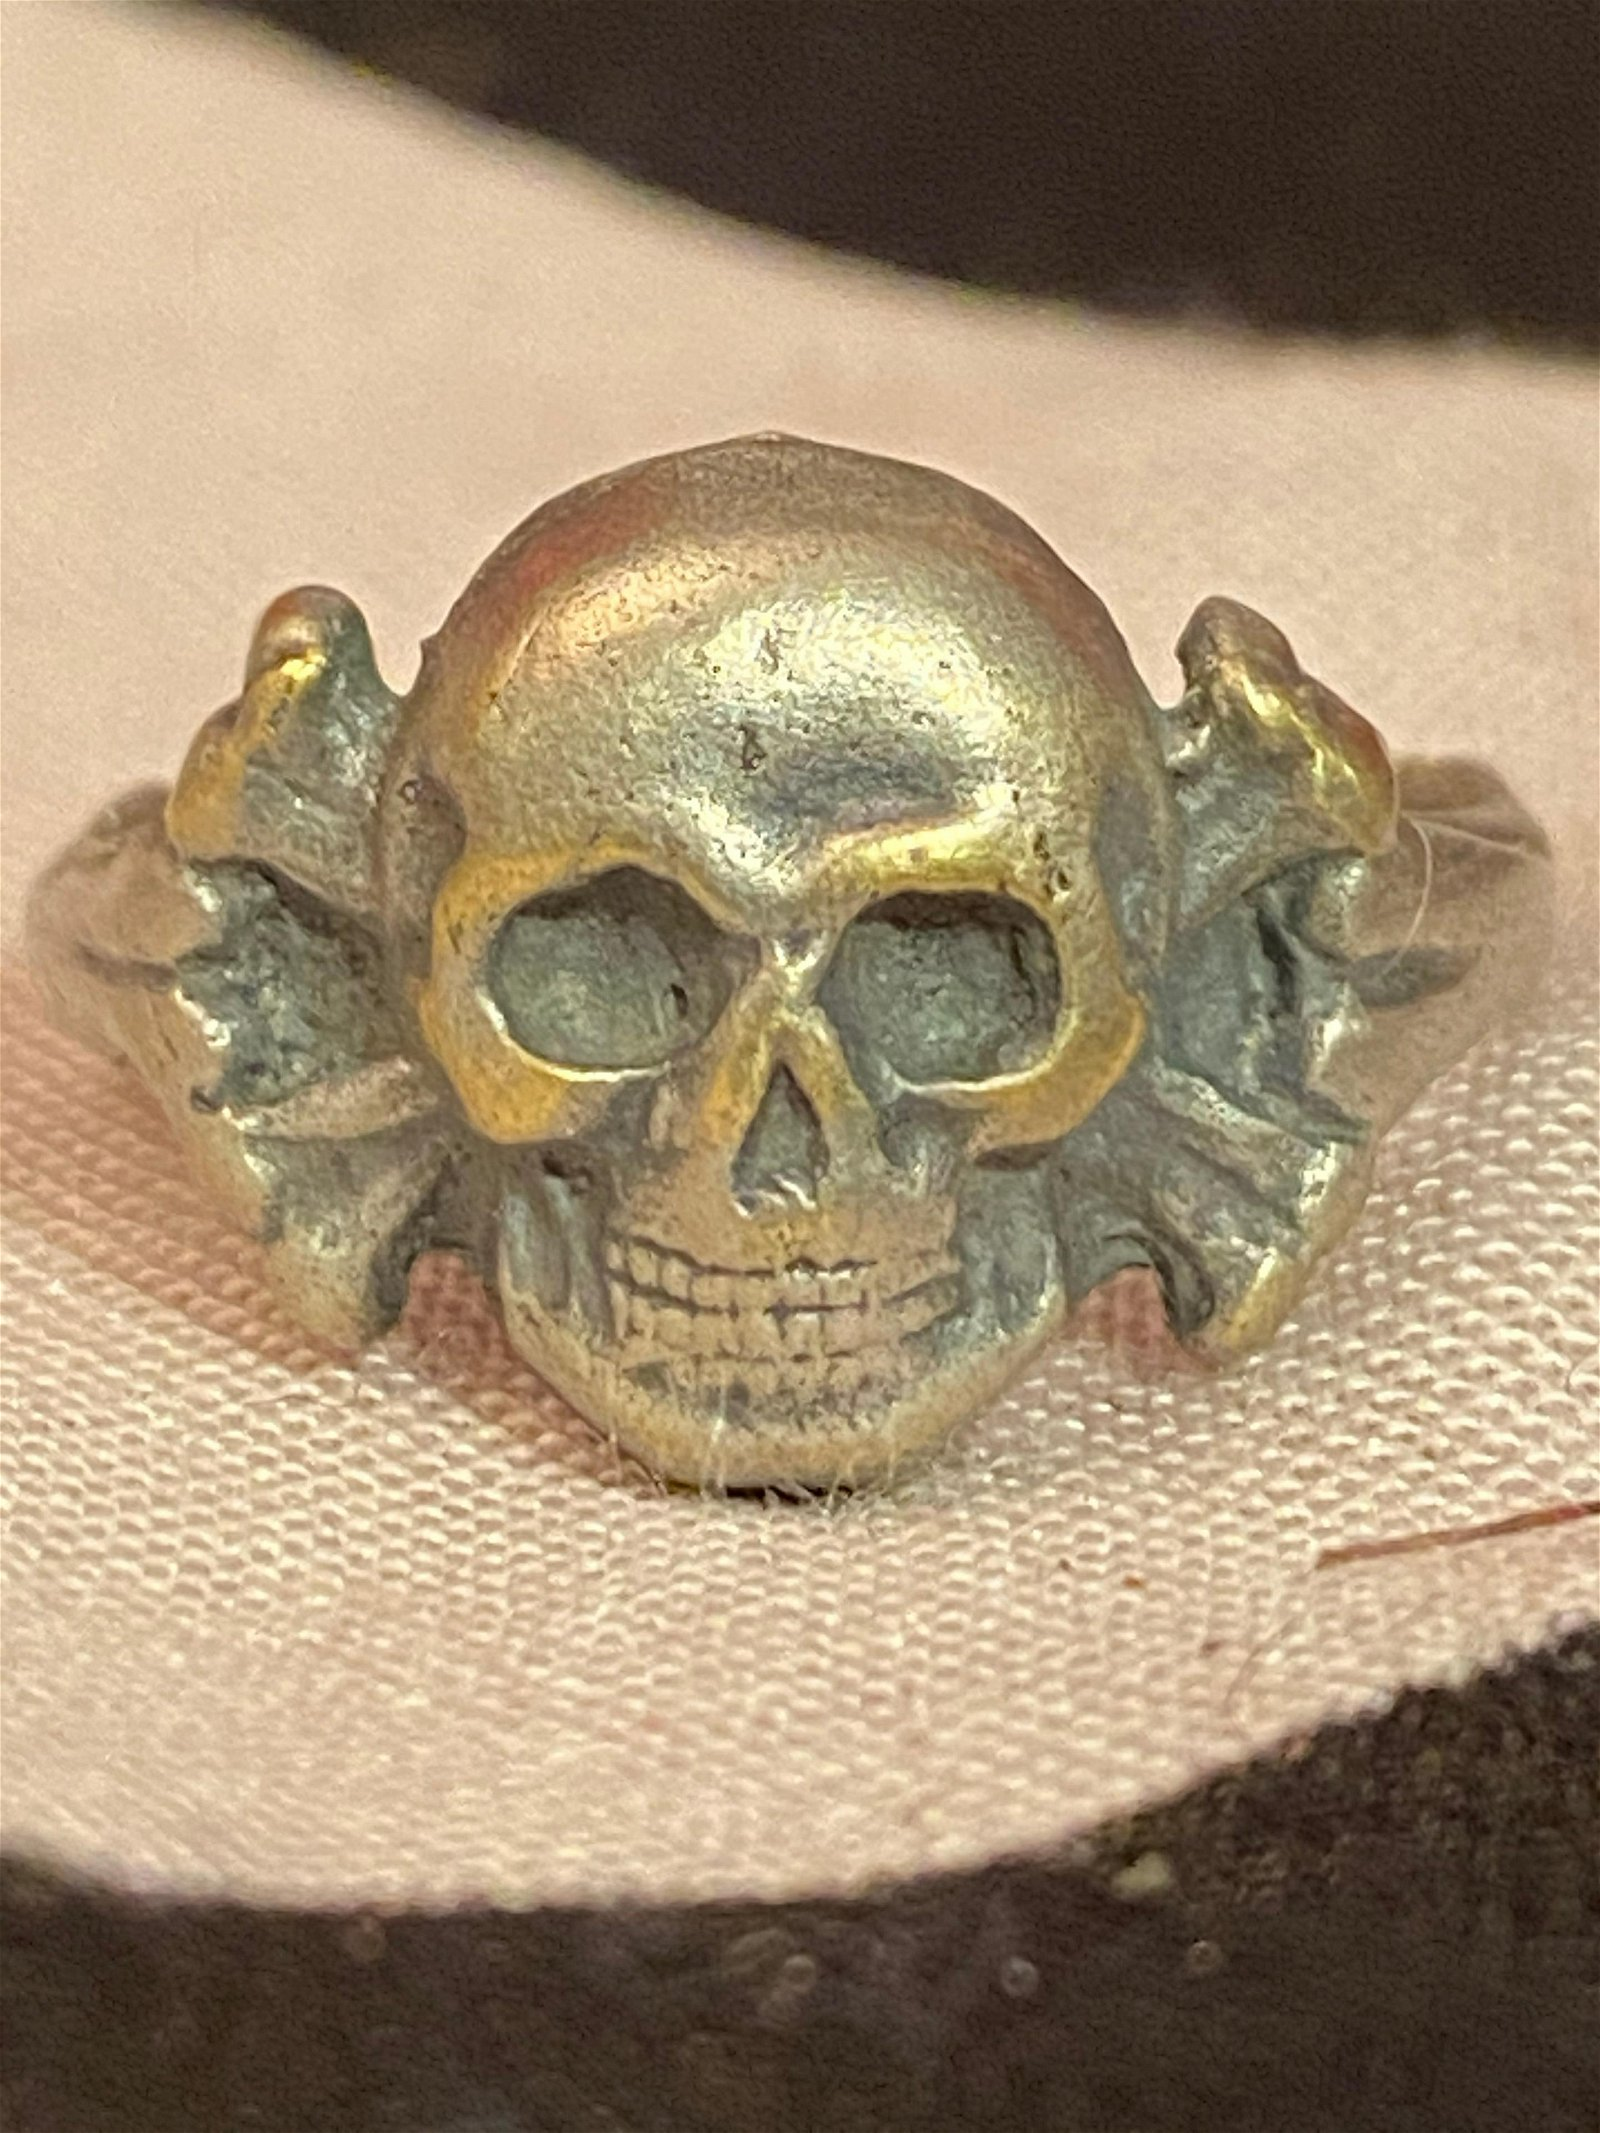 AUTH. WW2 GERMAN PANZER OFFICERS SKULL RING